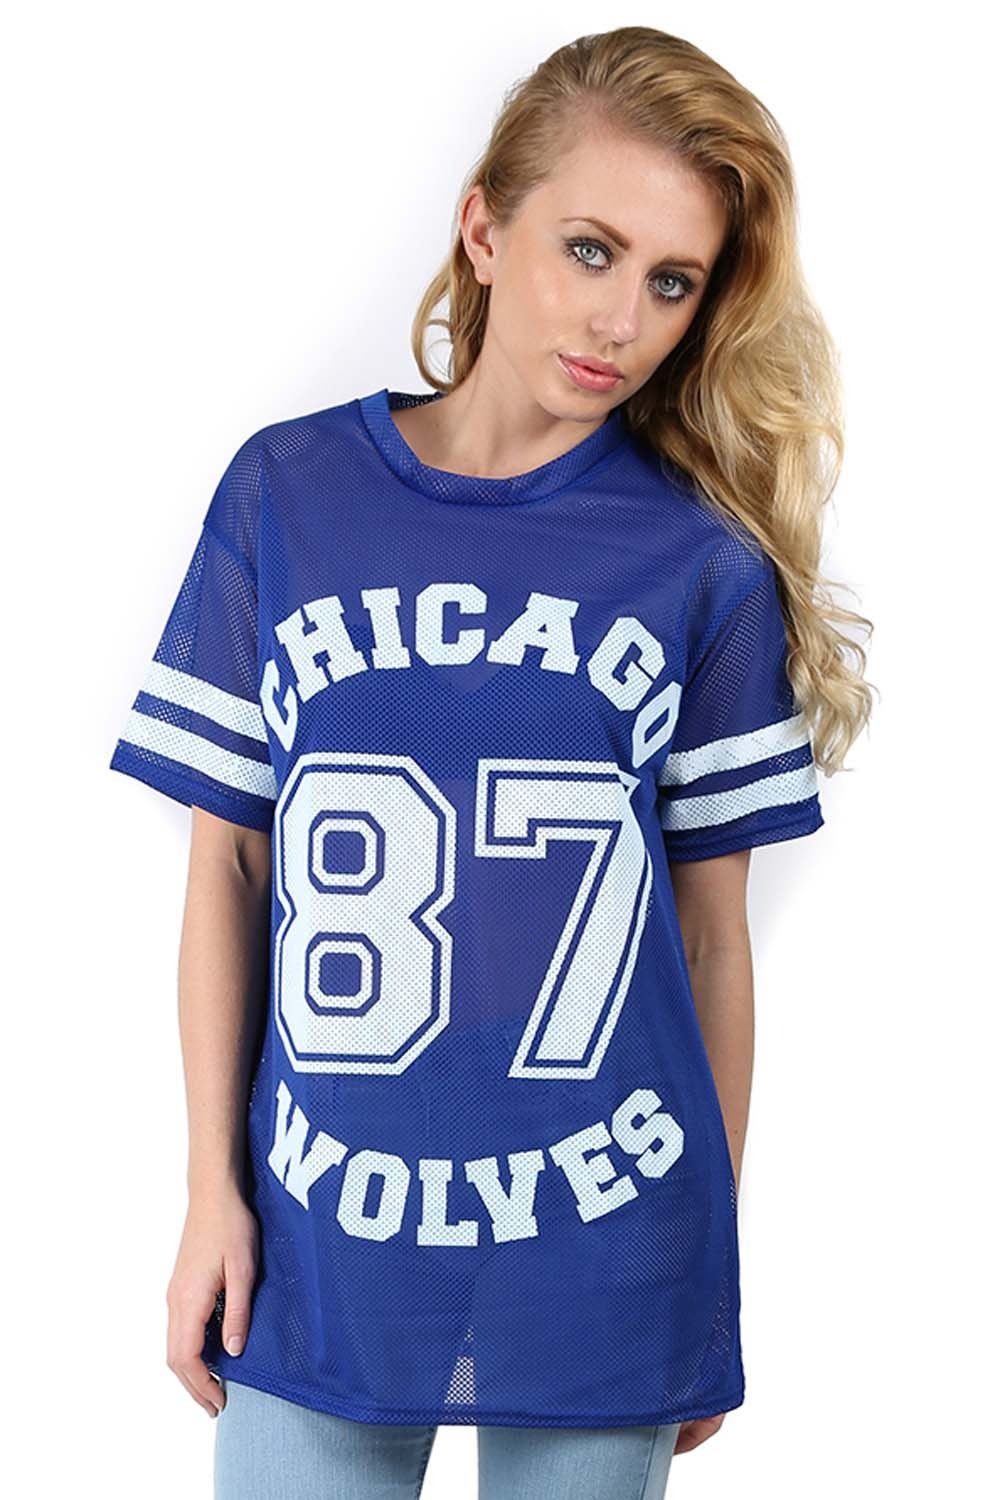 damen chicago 87 w lfe airtex baggy t shirt damen bedruckt uni baseball top ebay. Black Bedroom Furniture Sets. Home Design Ideas